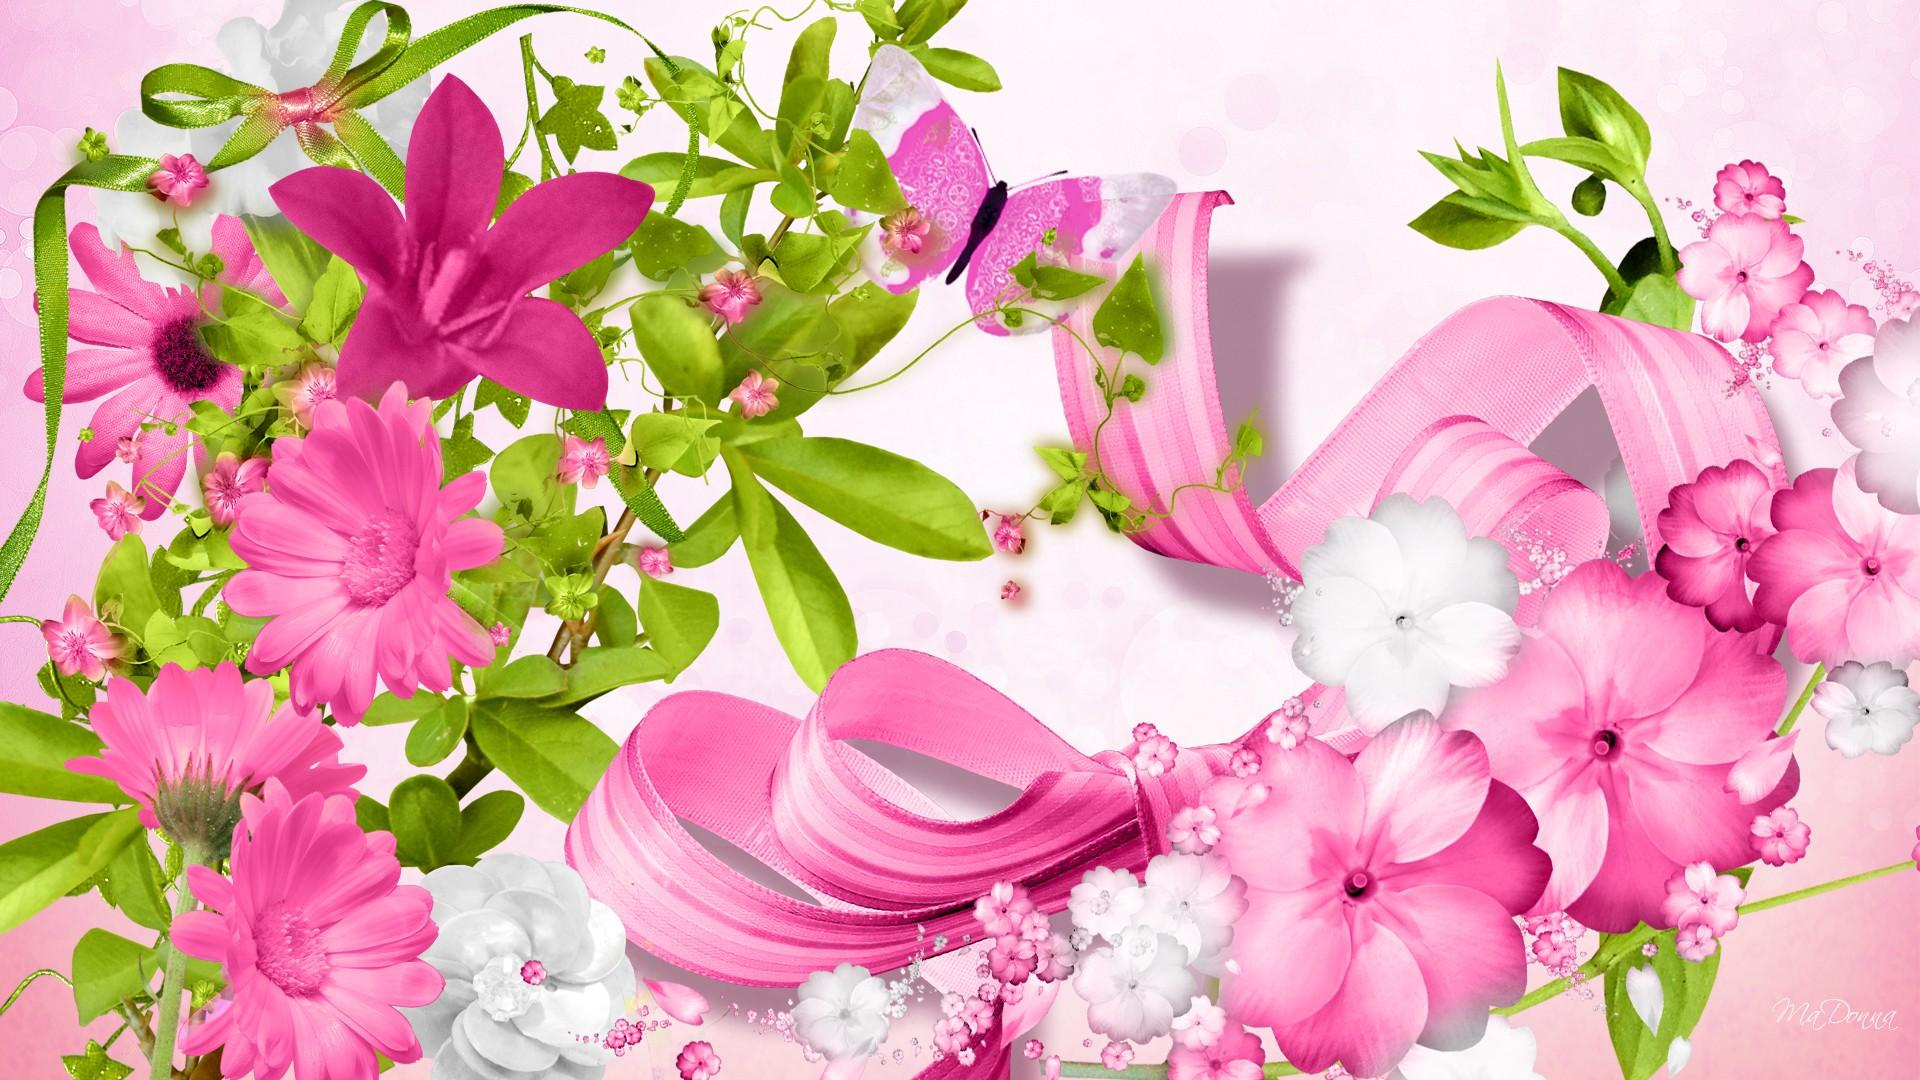 Pink Flowers Hd Wallpaper Background Image 1920x1080 Id745777